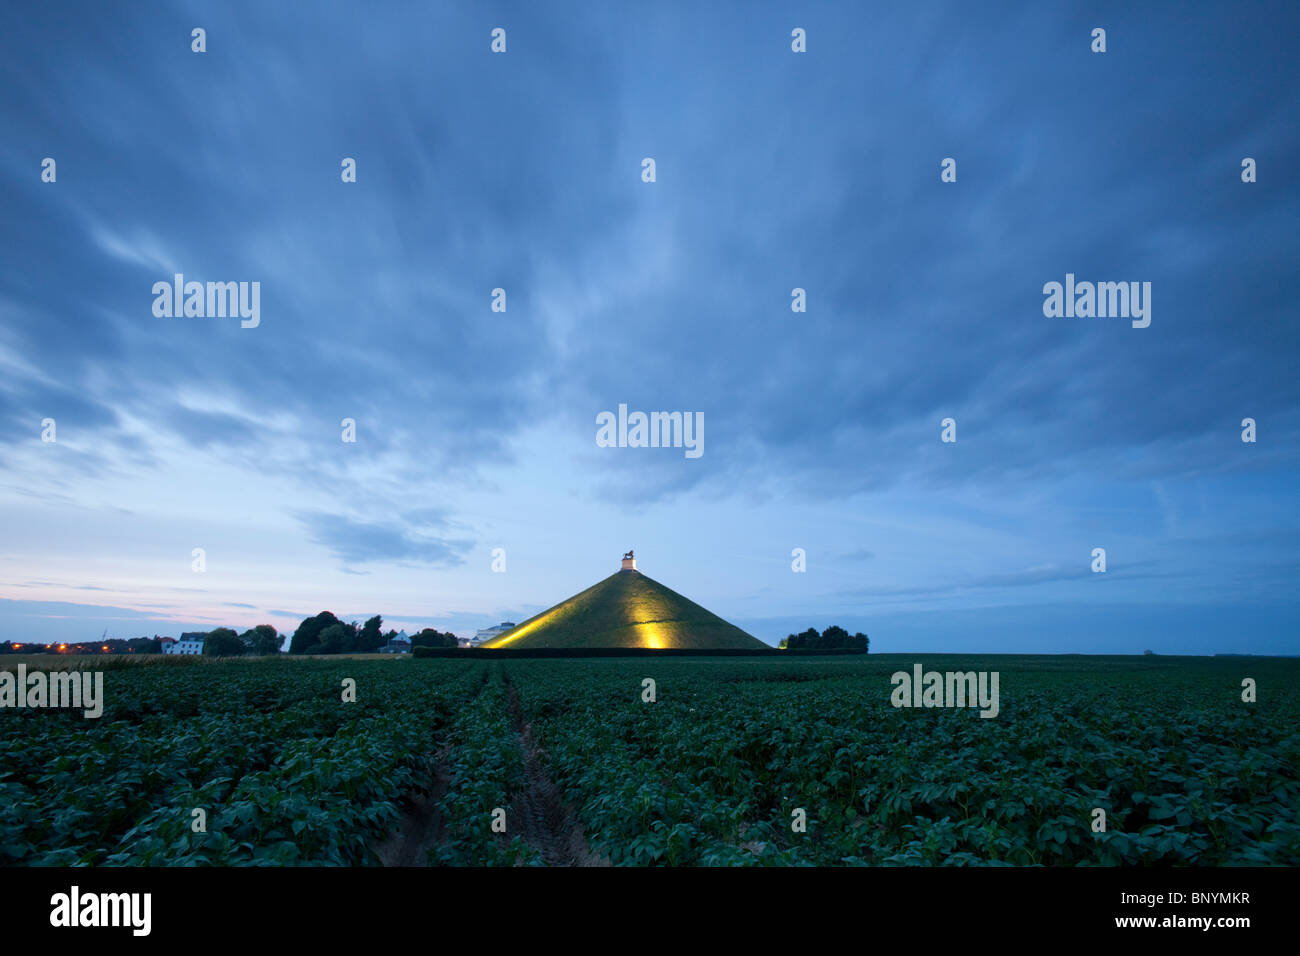 Wide angle shot during blue hour of the Lion Mound, a monument marking the battle of Waterloo, Belgium. - Stock Image